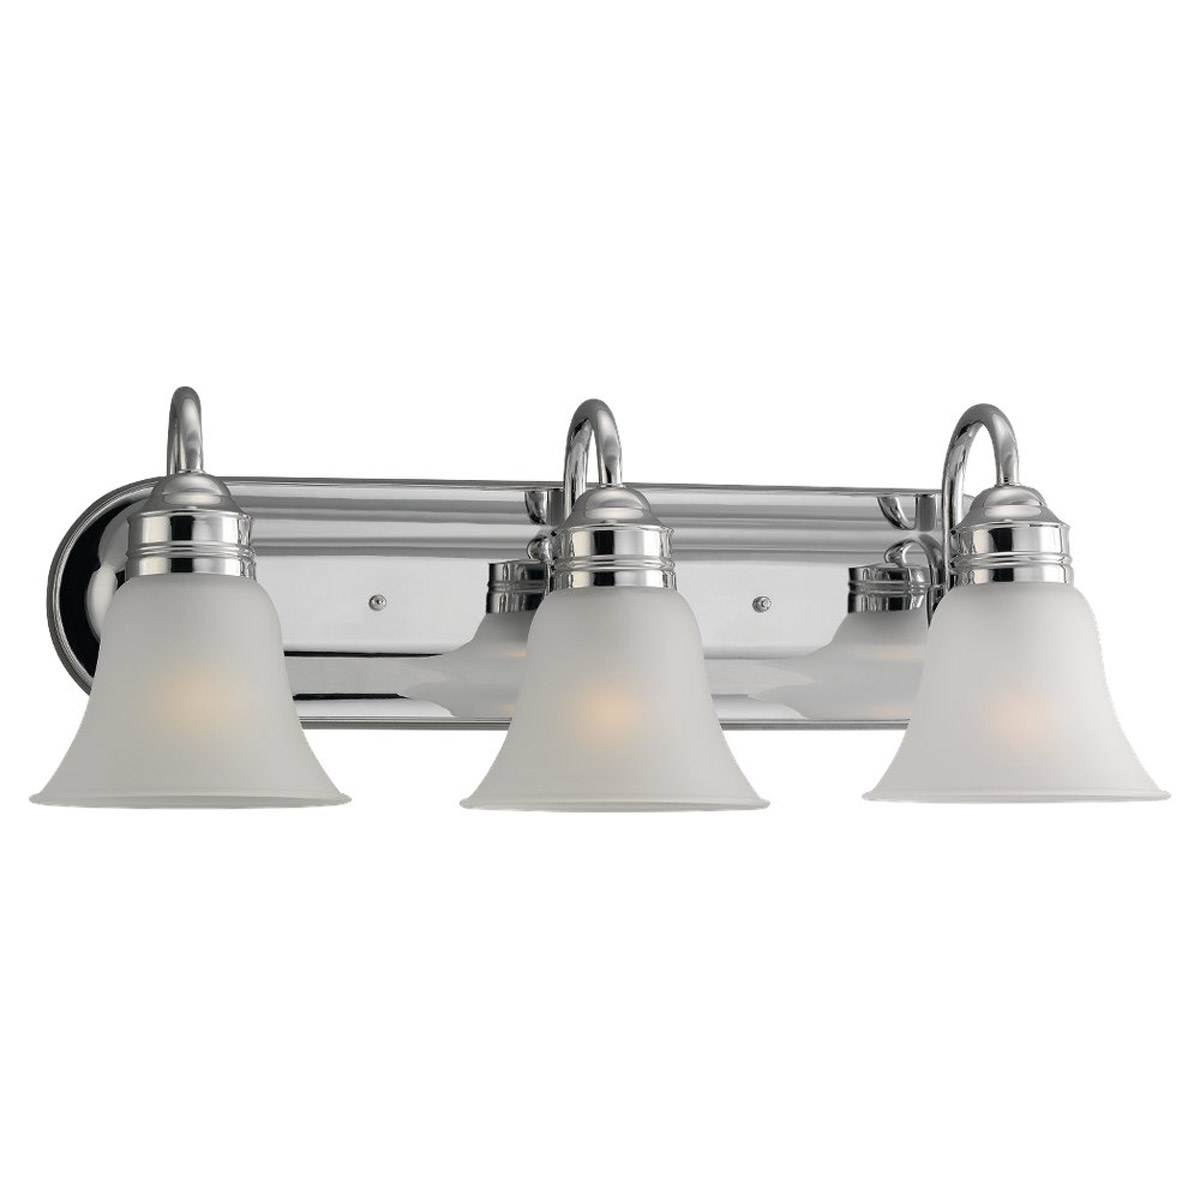 Sea Gull Lighting Gladstone 3 Light Bath Vanity in Chrome 49852BLE-05 photo